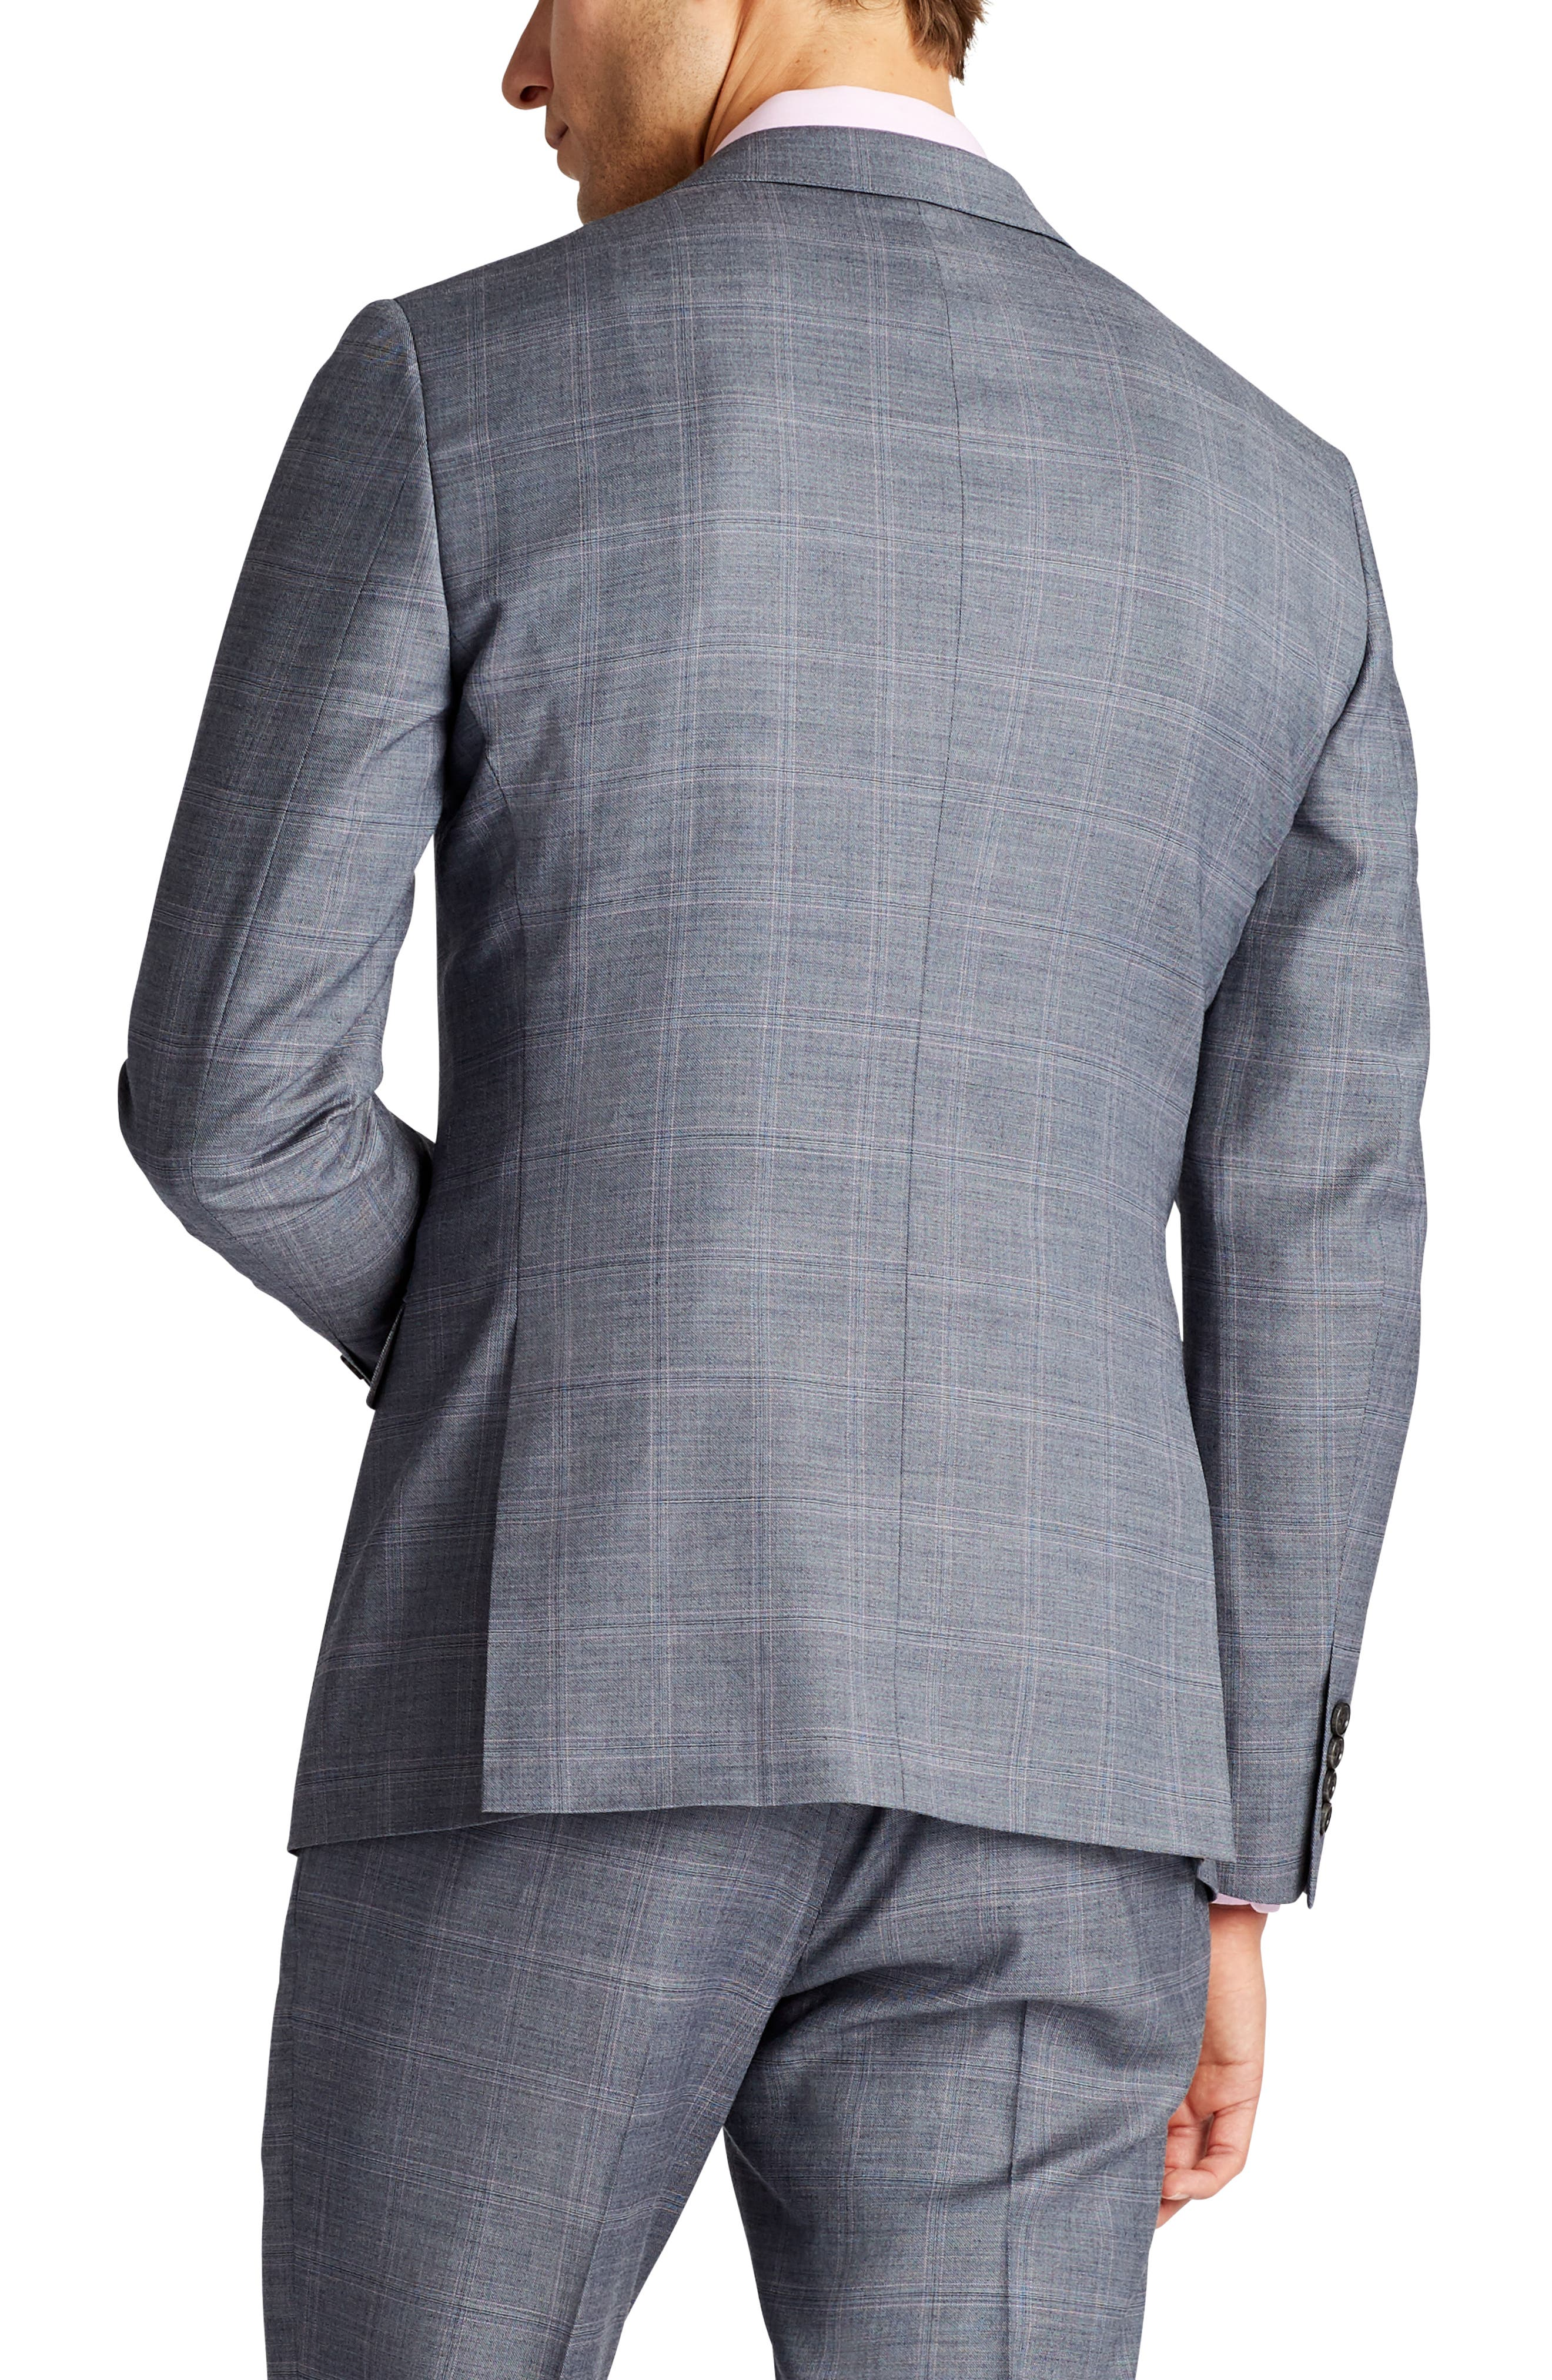 Jetsetter Slim Fit Stretch Plaid Wool Sport Coat,                             Alternate thumbnail 2, color,                             020